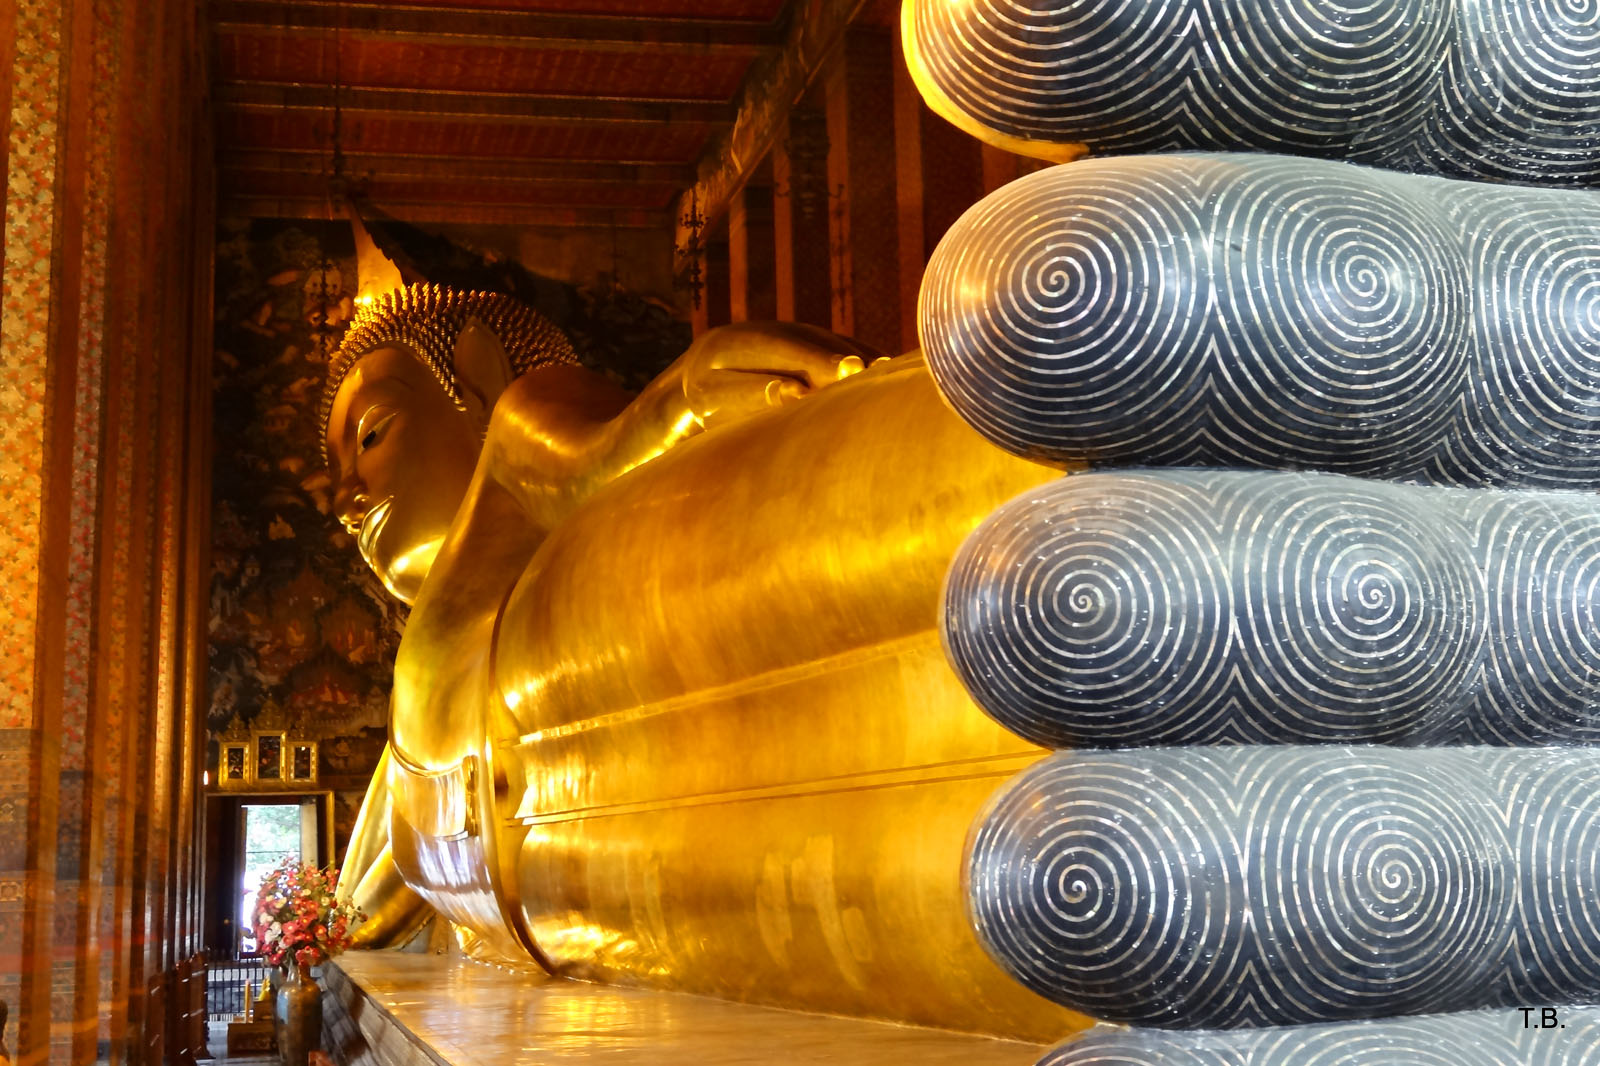 Wat Pho: The Temple of the Reclining Buddha